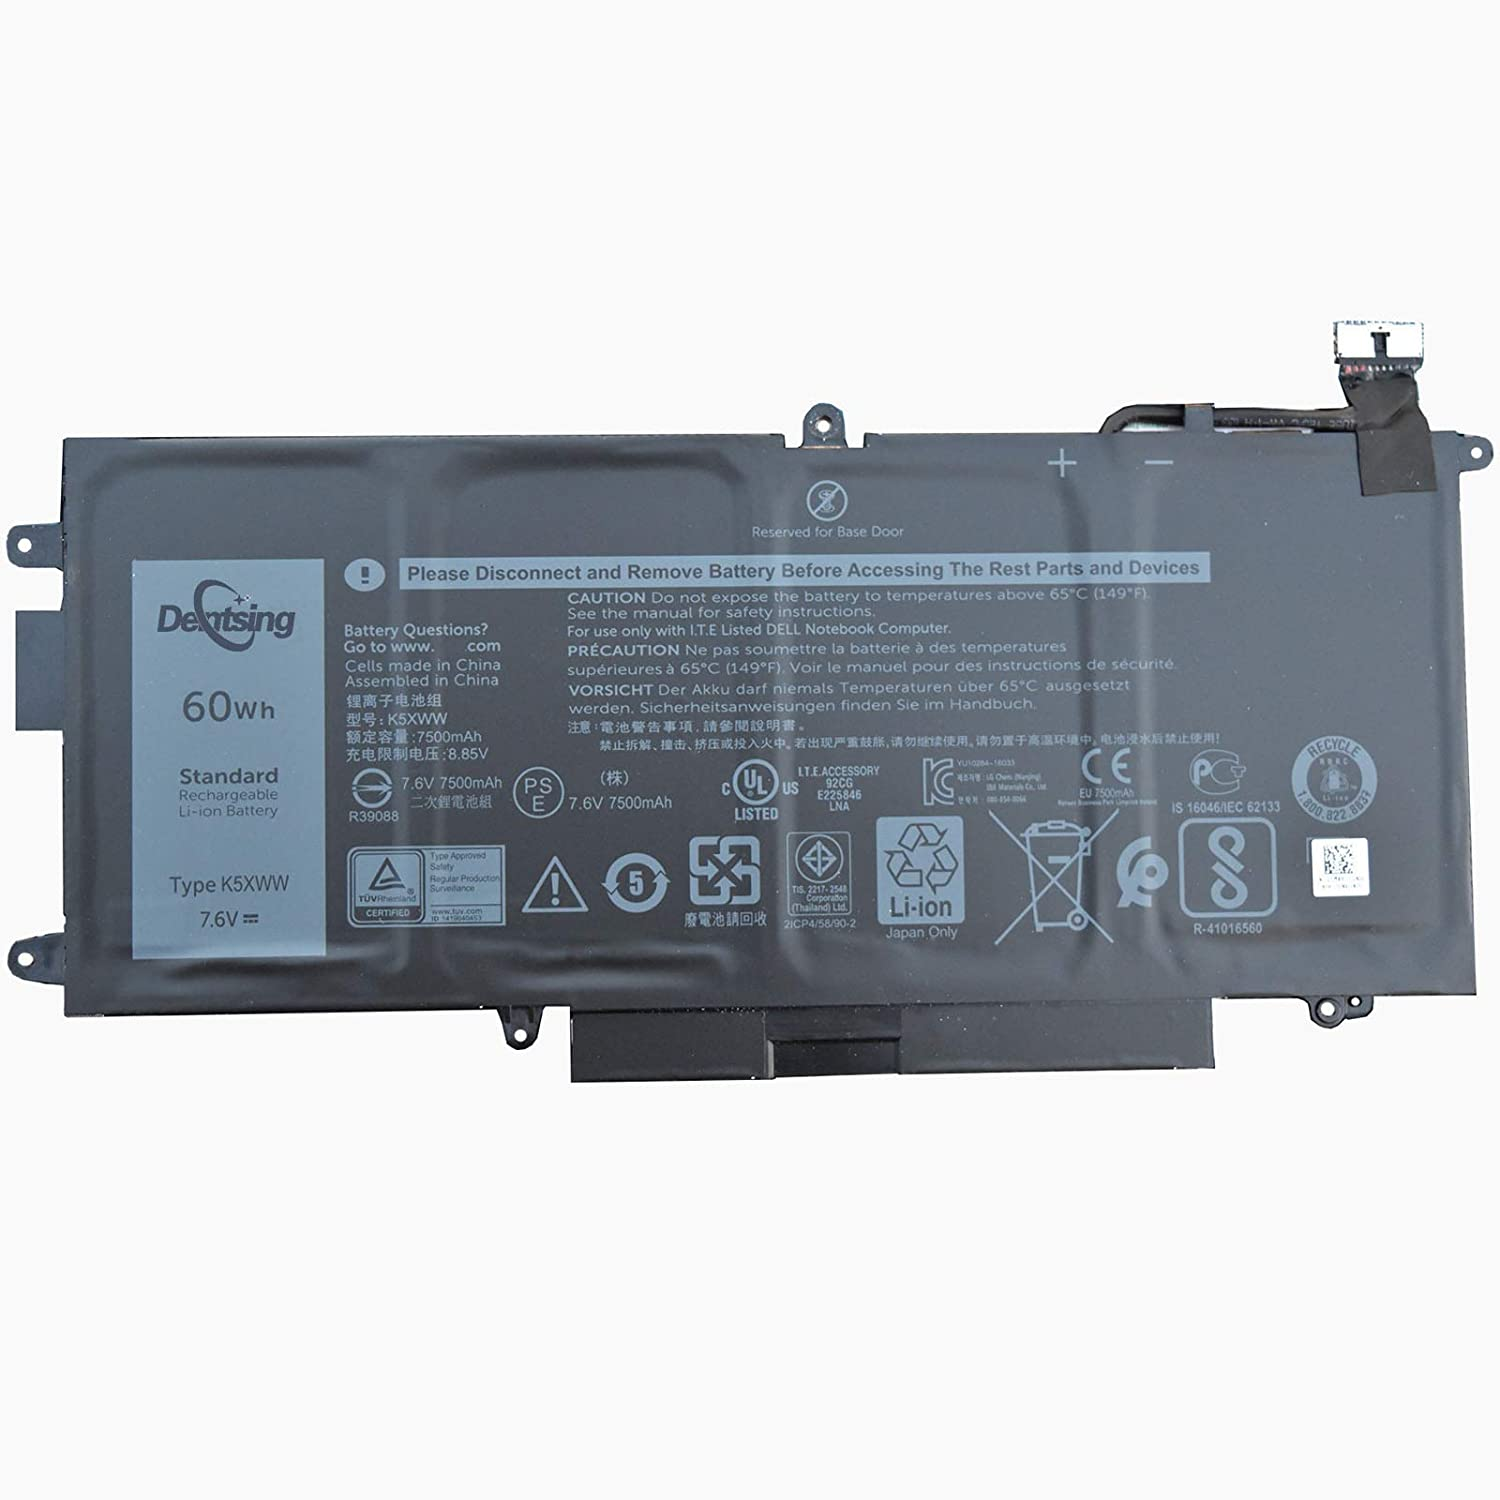 Dentsing 7.6V 60Wh/7500mAh 4-Cell K5XWW Laptop Battery Compatible with Dell Latitude 13 7389 7390 2-in-1 and 5289 2-in-1 Series Notebook 6CYH6 71TG4 725KY J0PGR N18GG